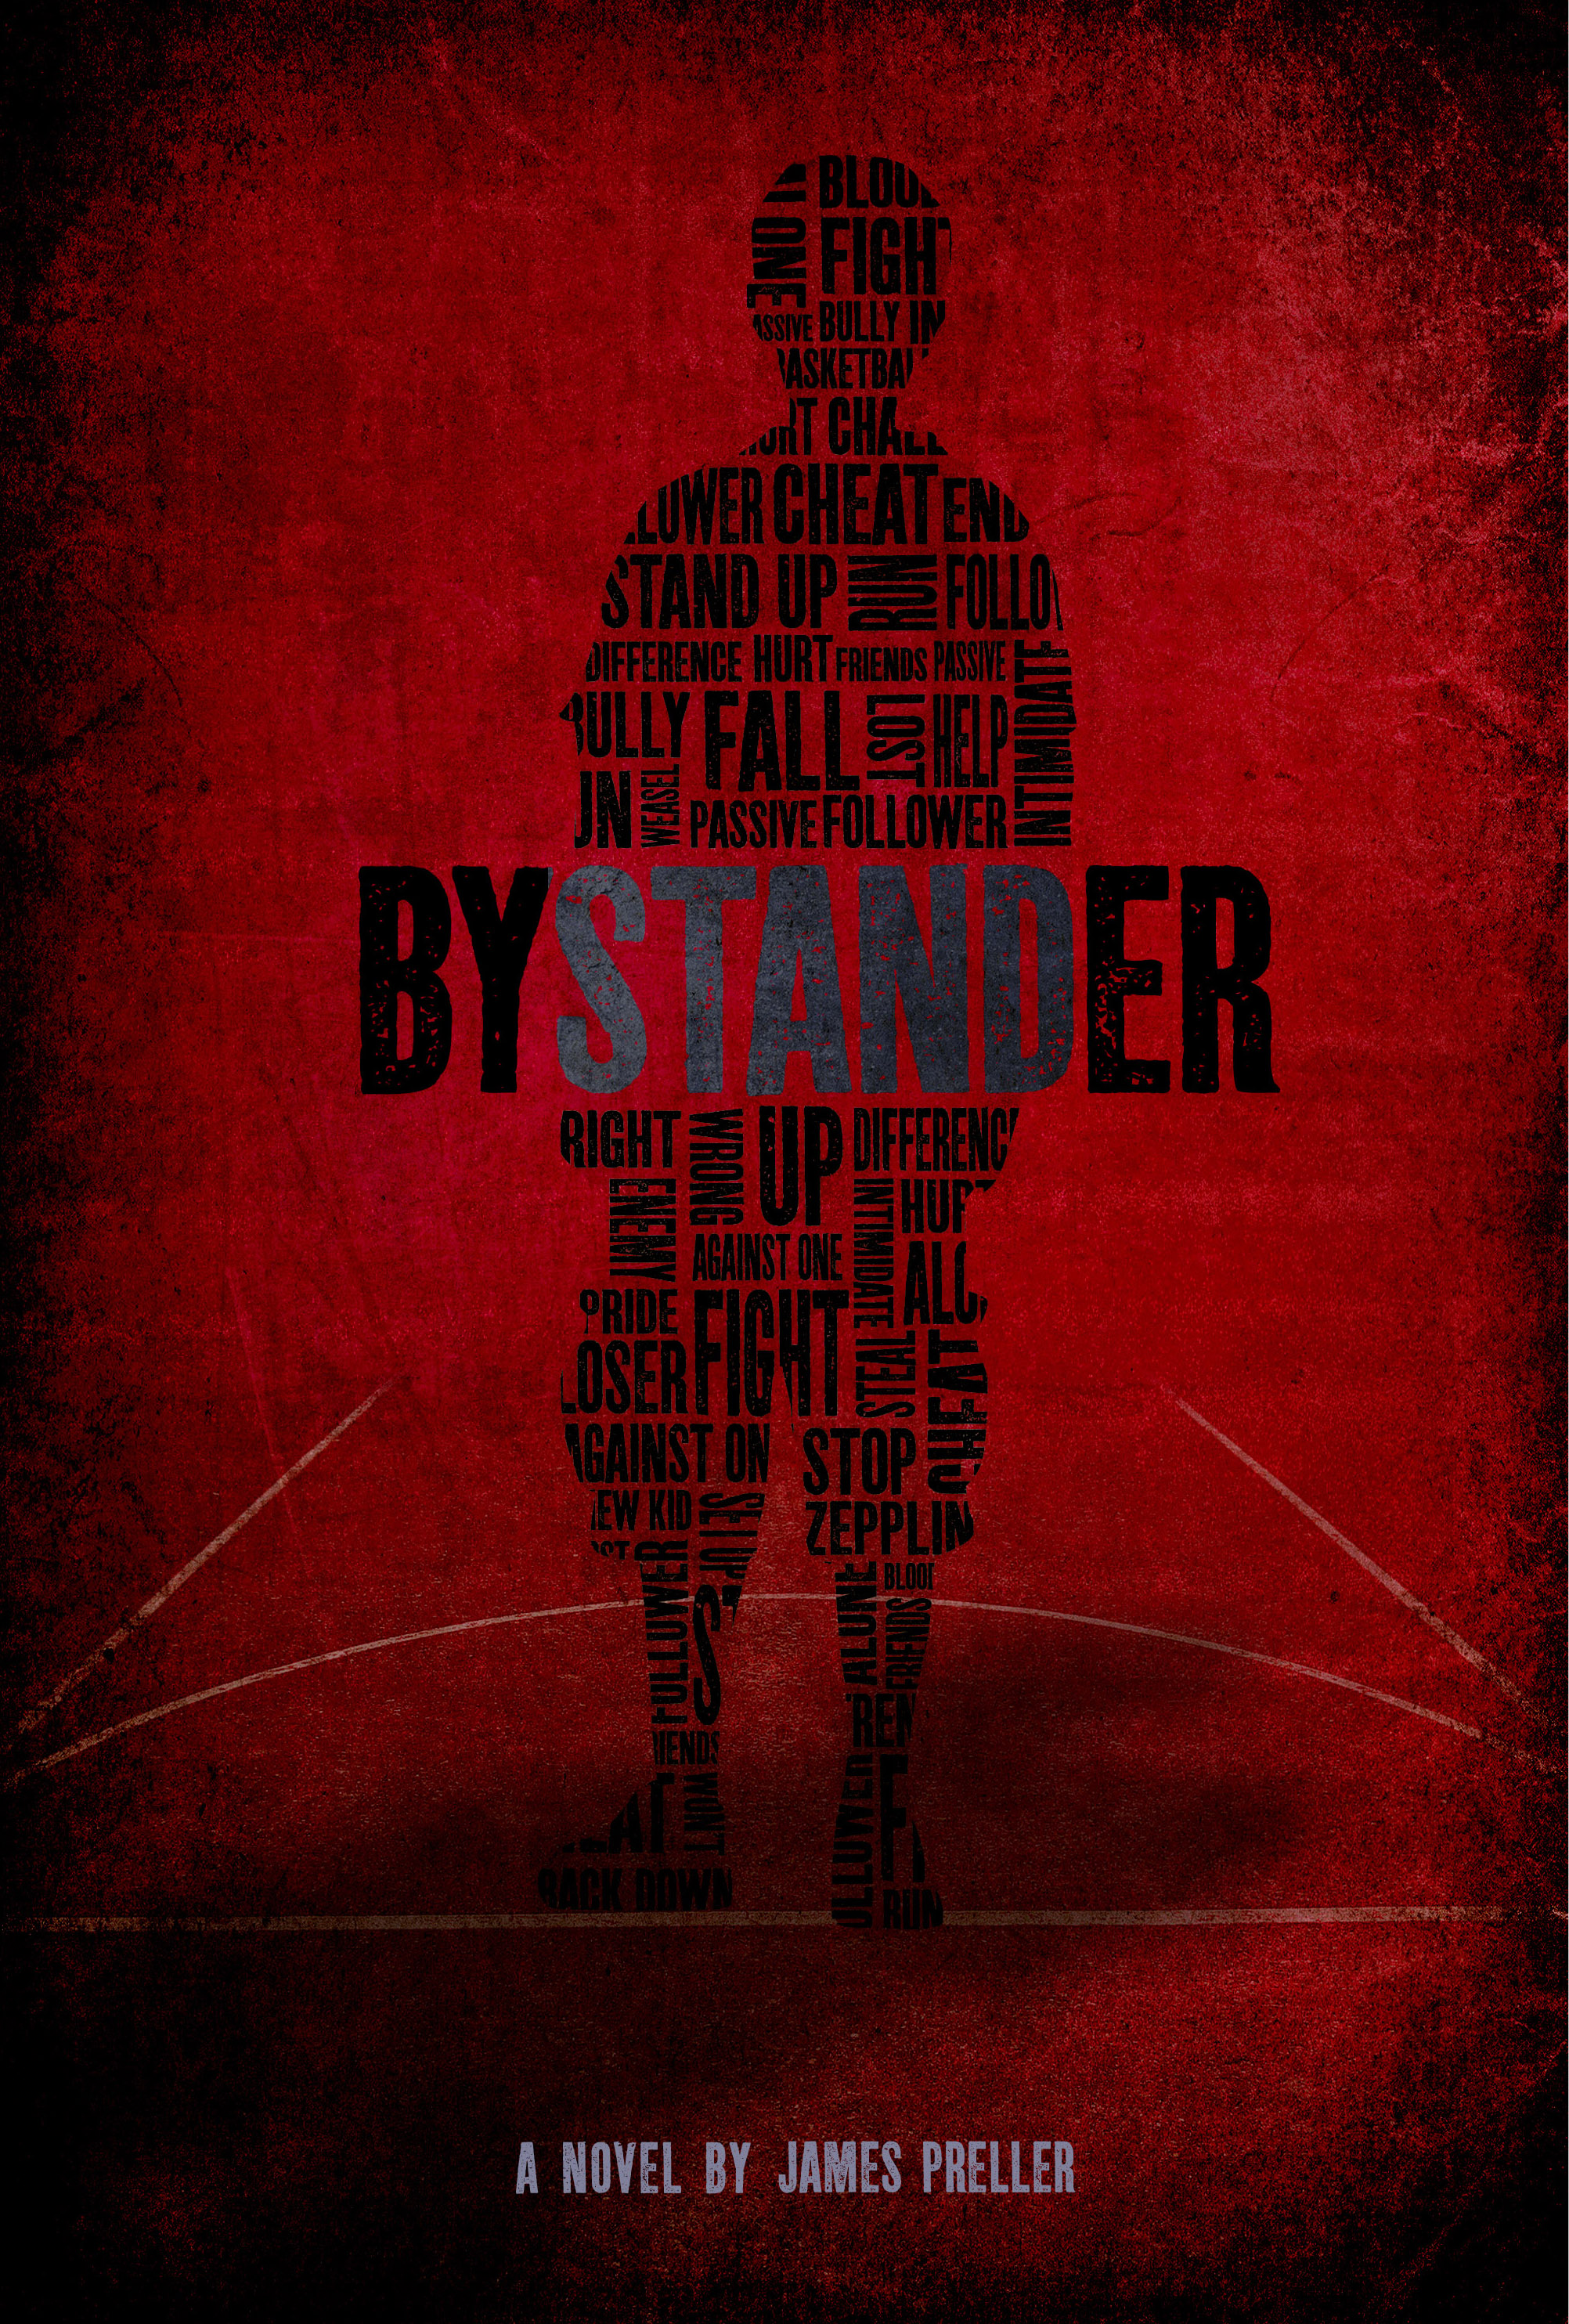 Bystander Effect Quotes. QuotesGram